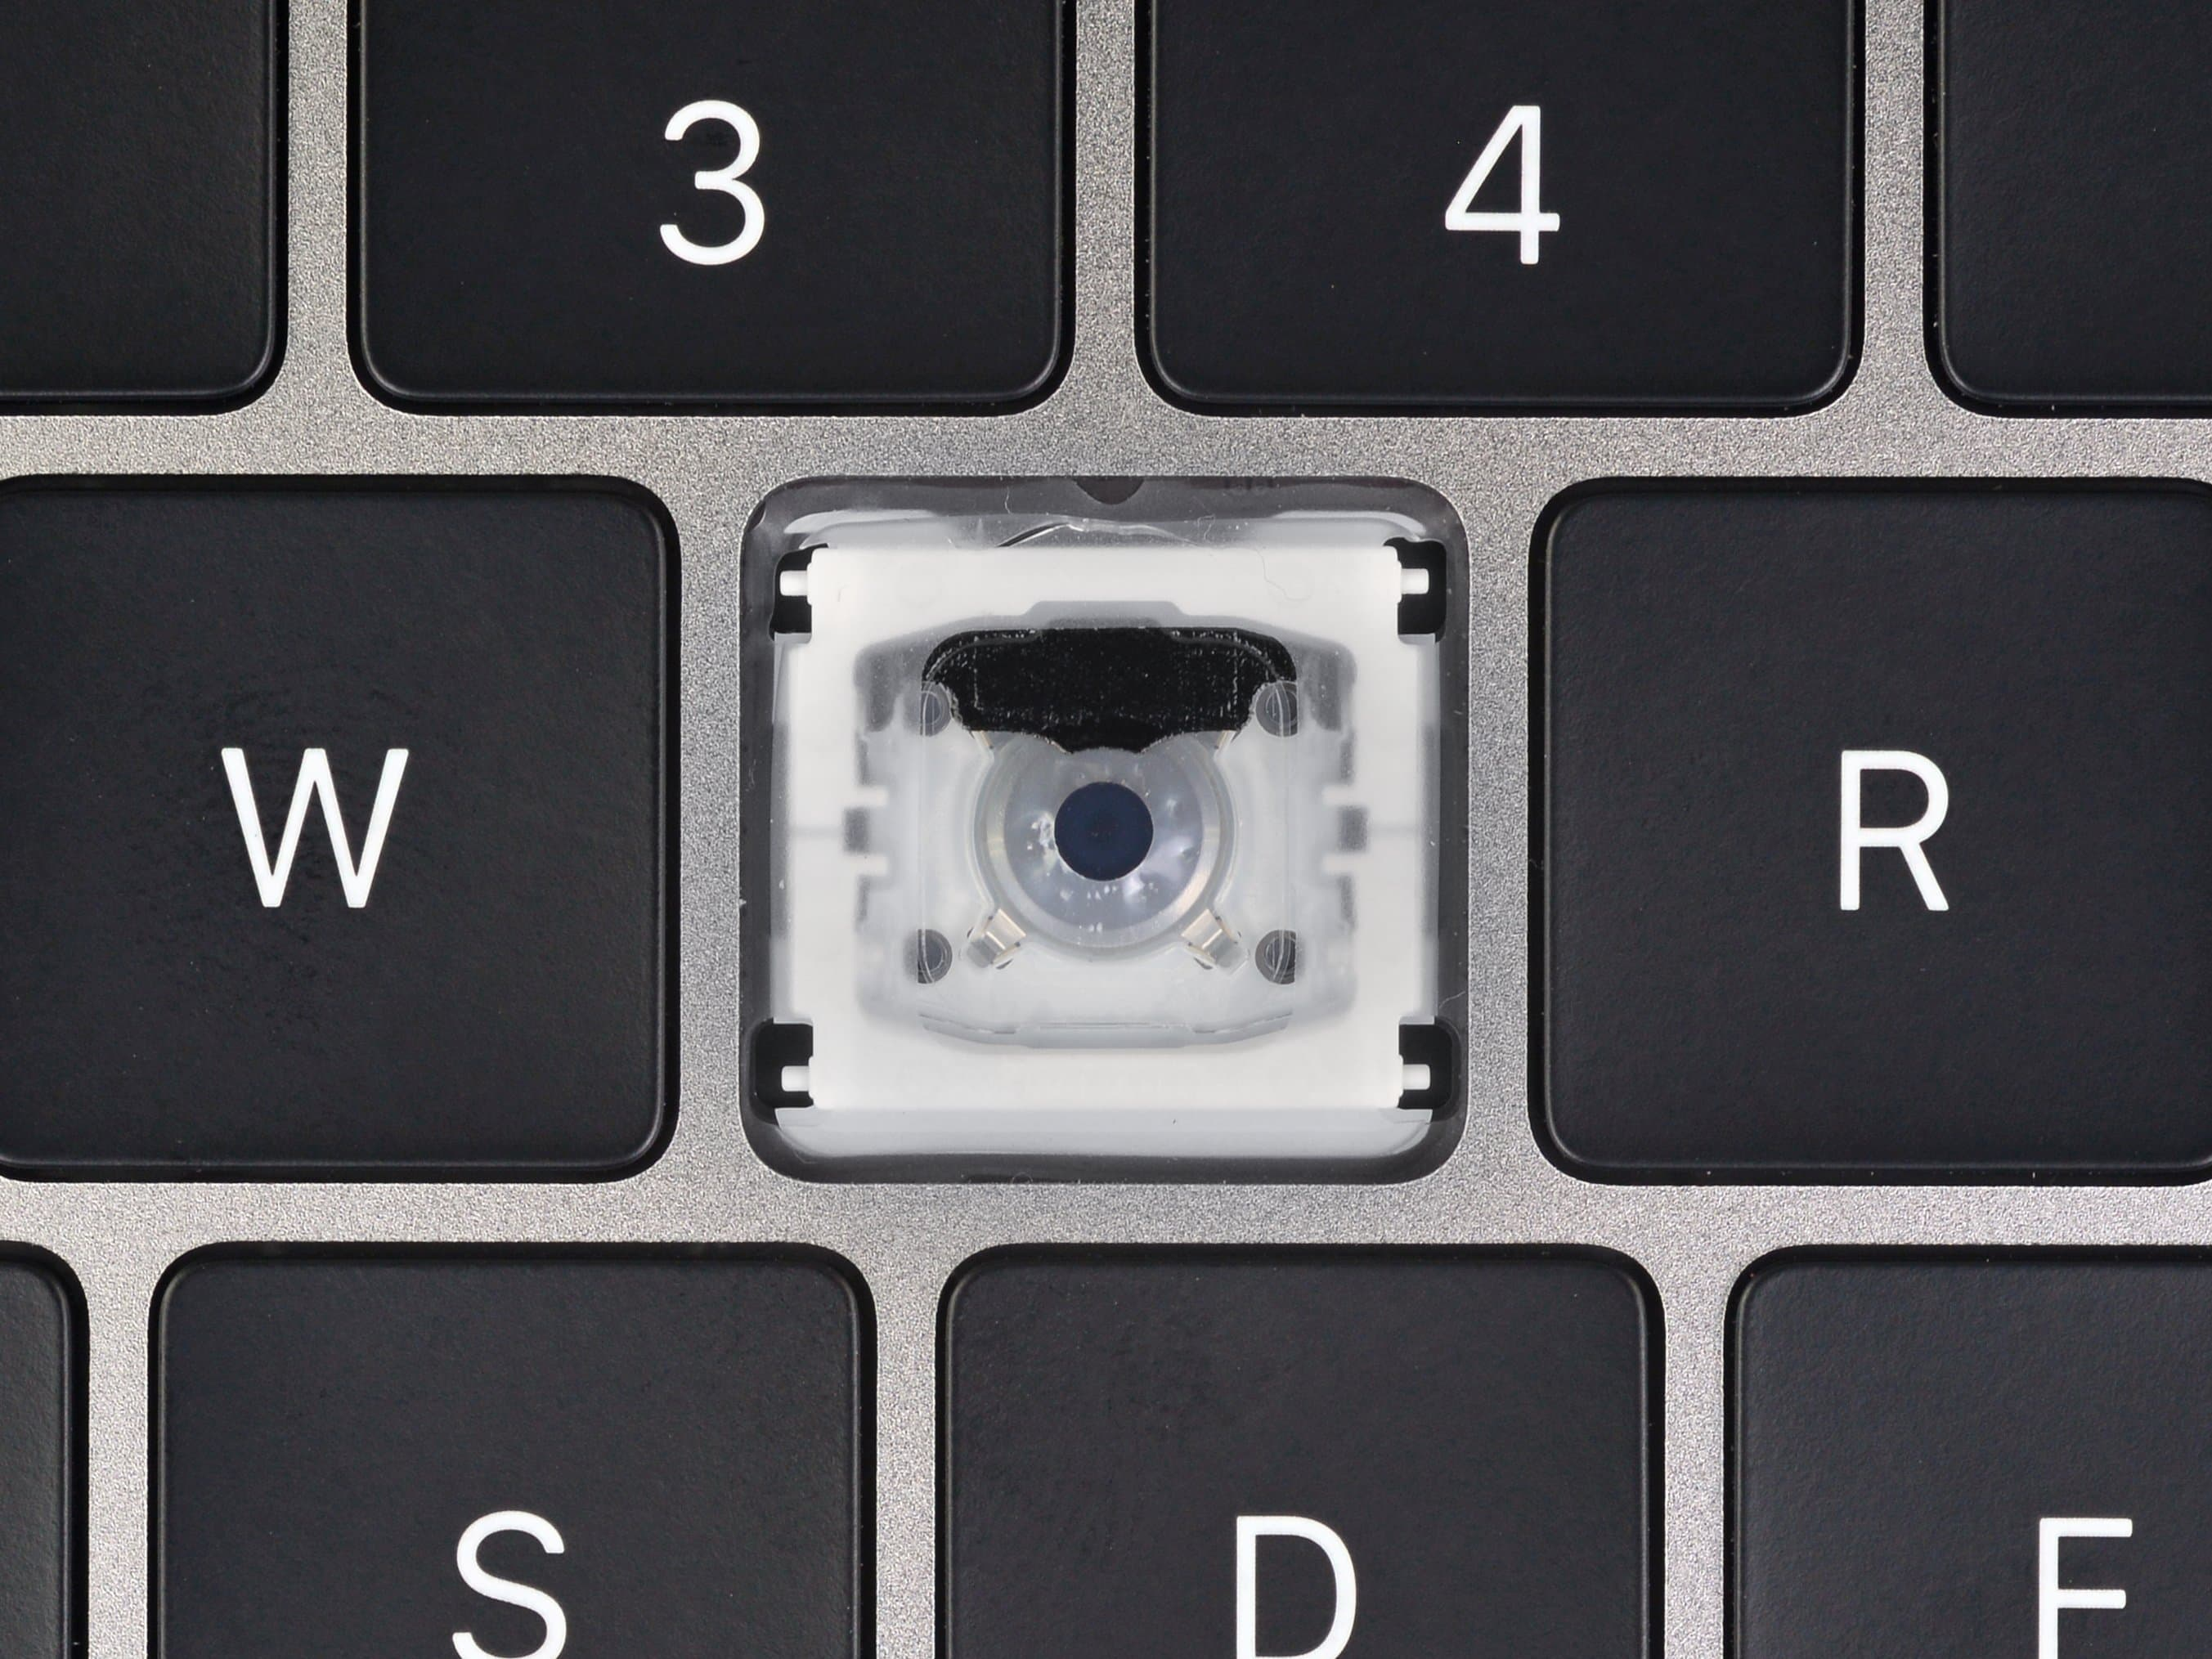 2019 MacBook Pro keyboard